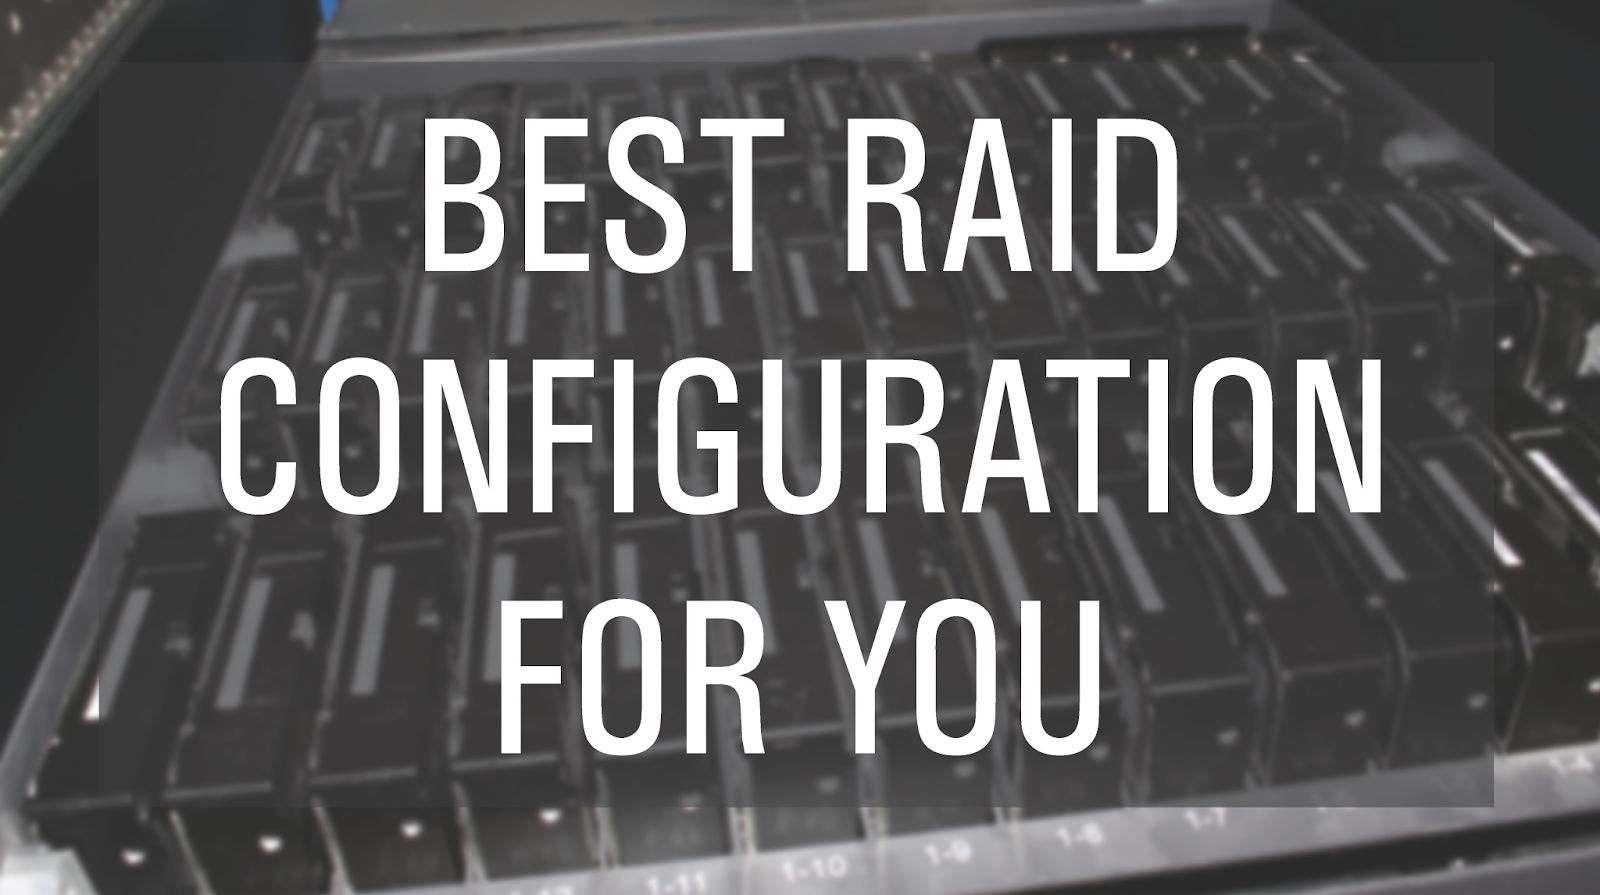 45 Drives: How to Decide on the Best RAID Configuration For You